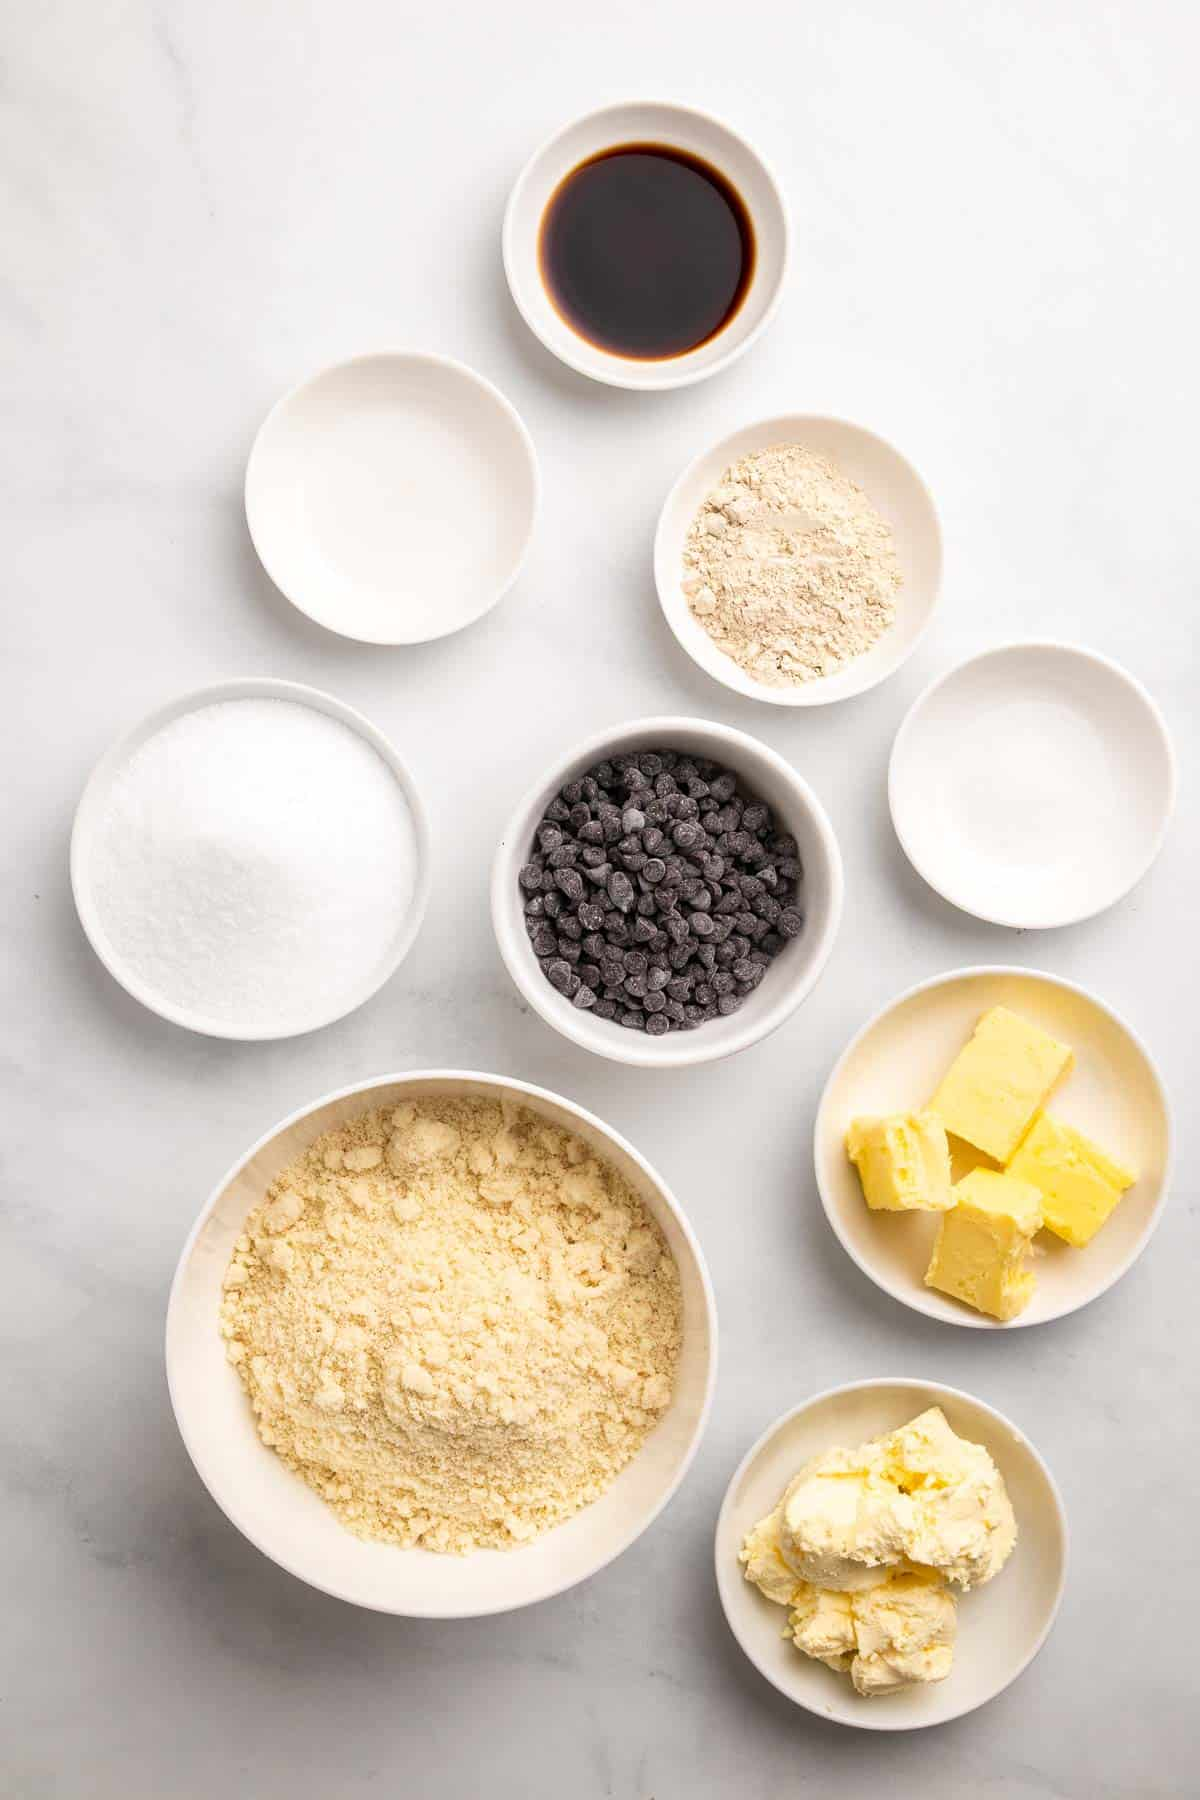 Ingredients for cookie dough separated into individual bowls and ramekins